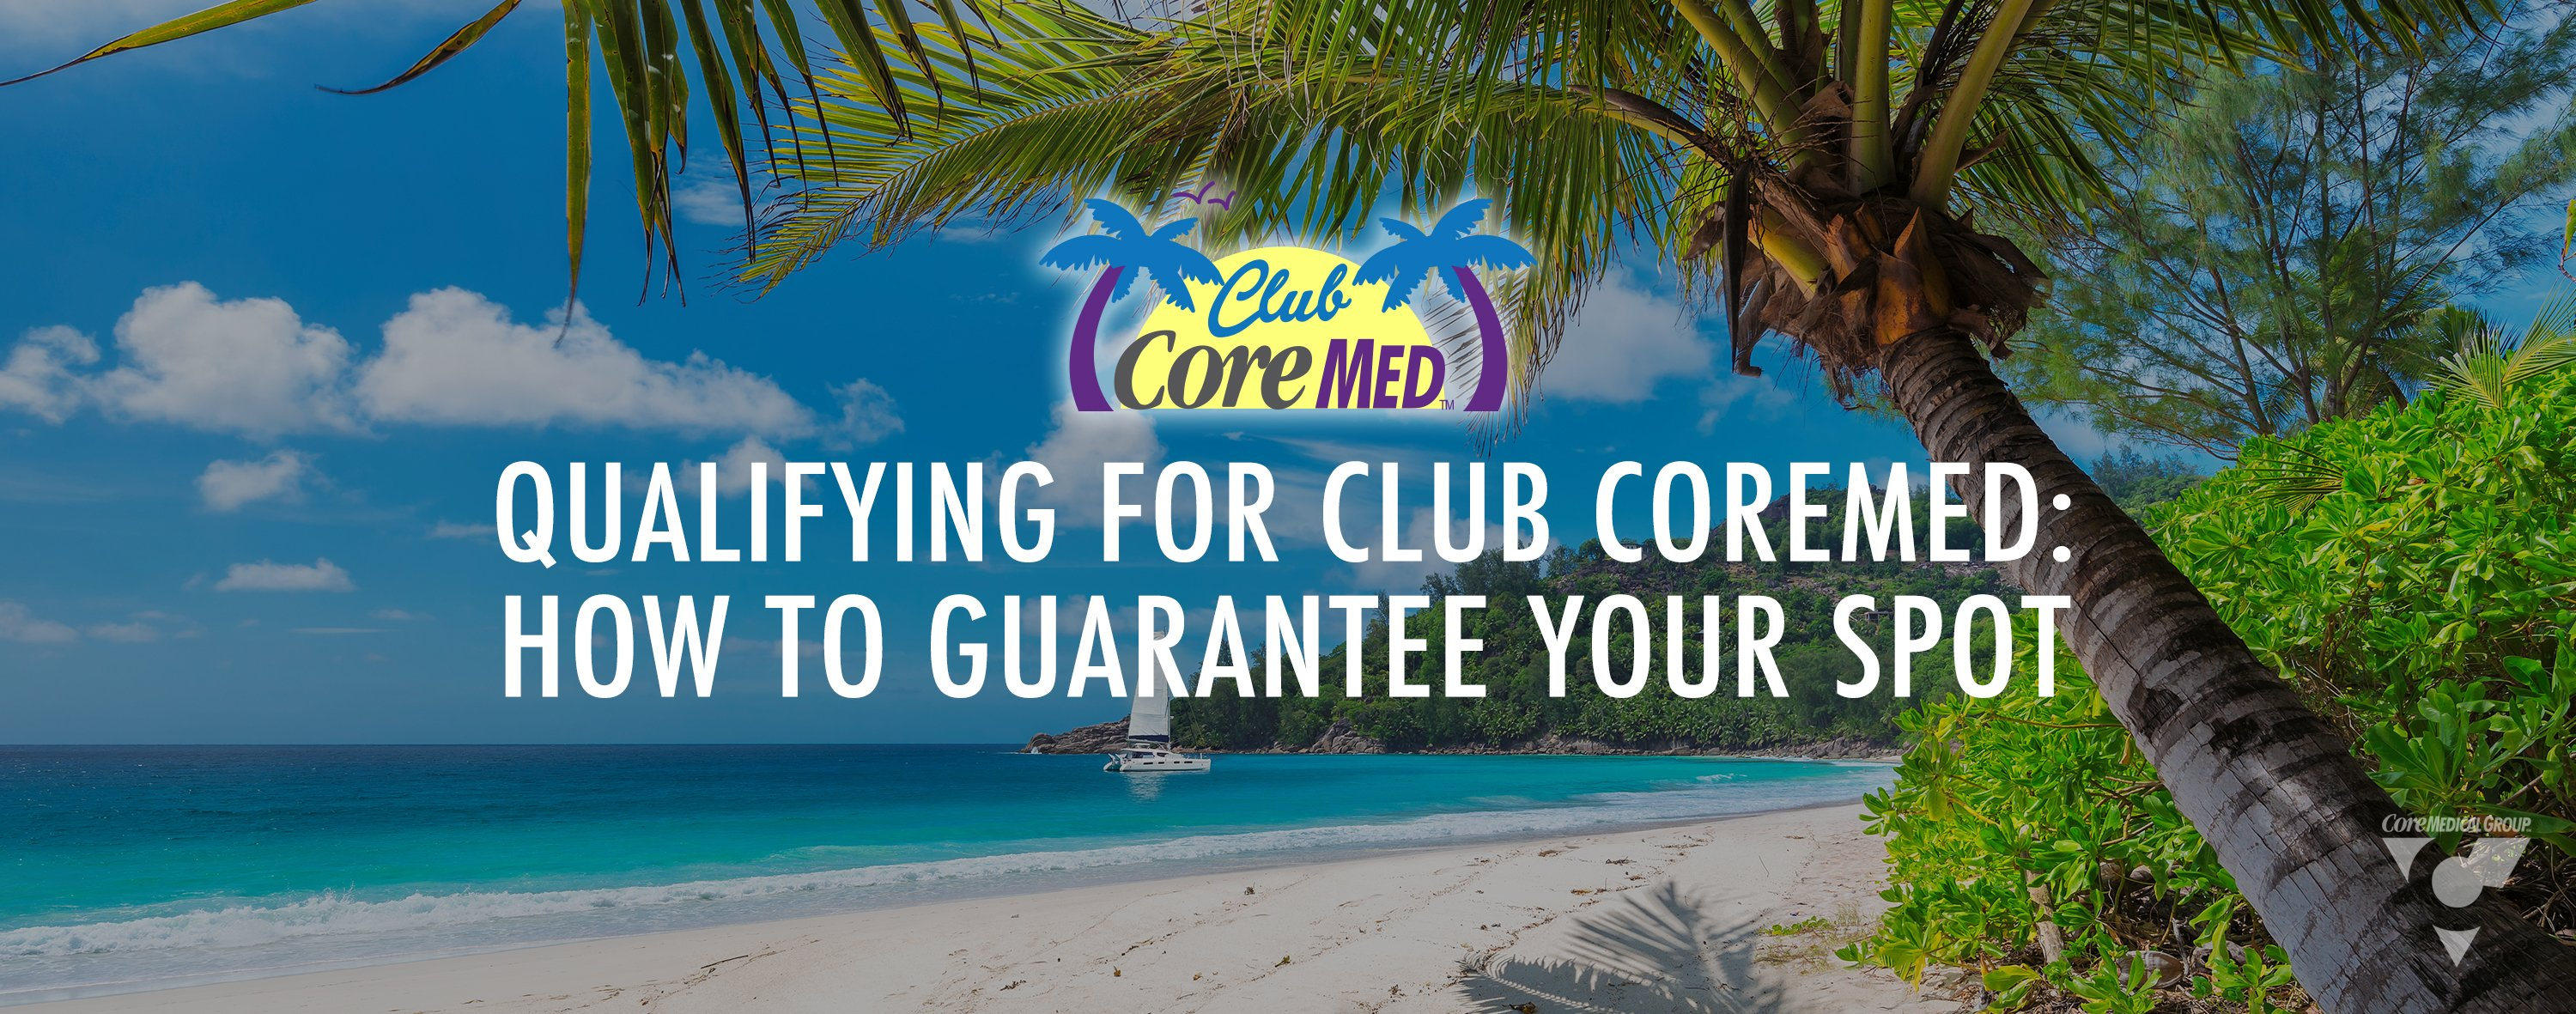 How to qualify for club core med